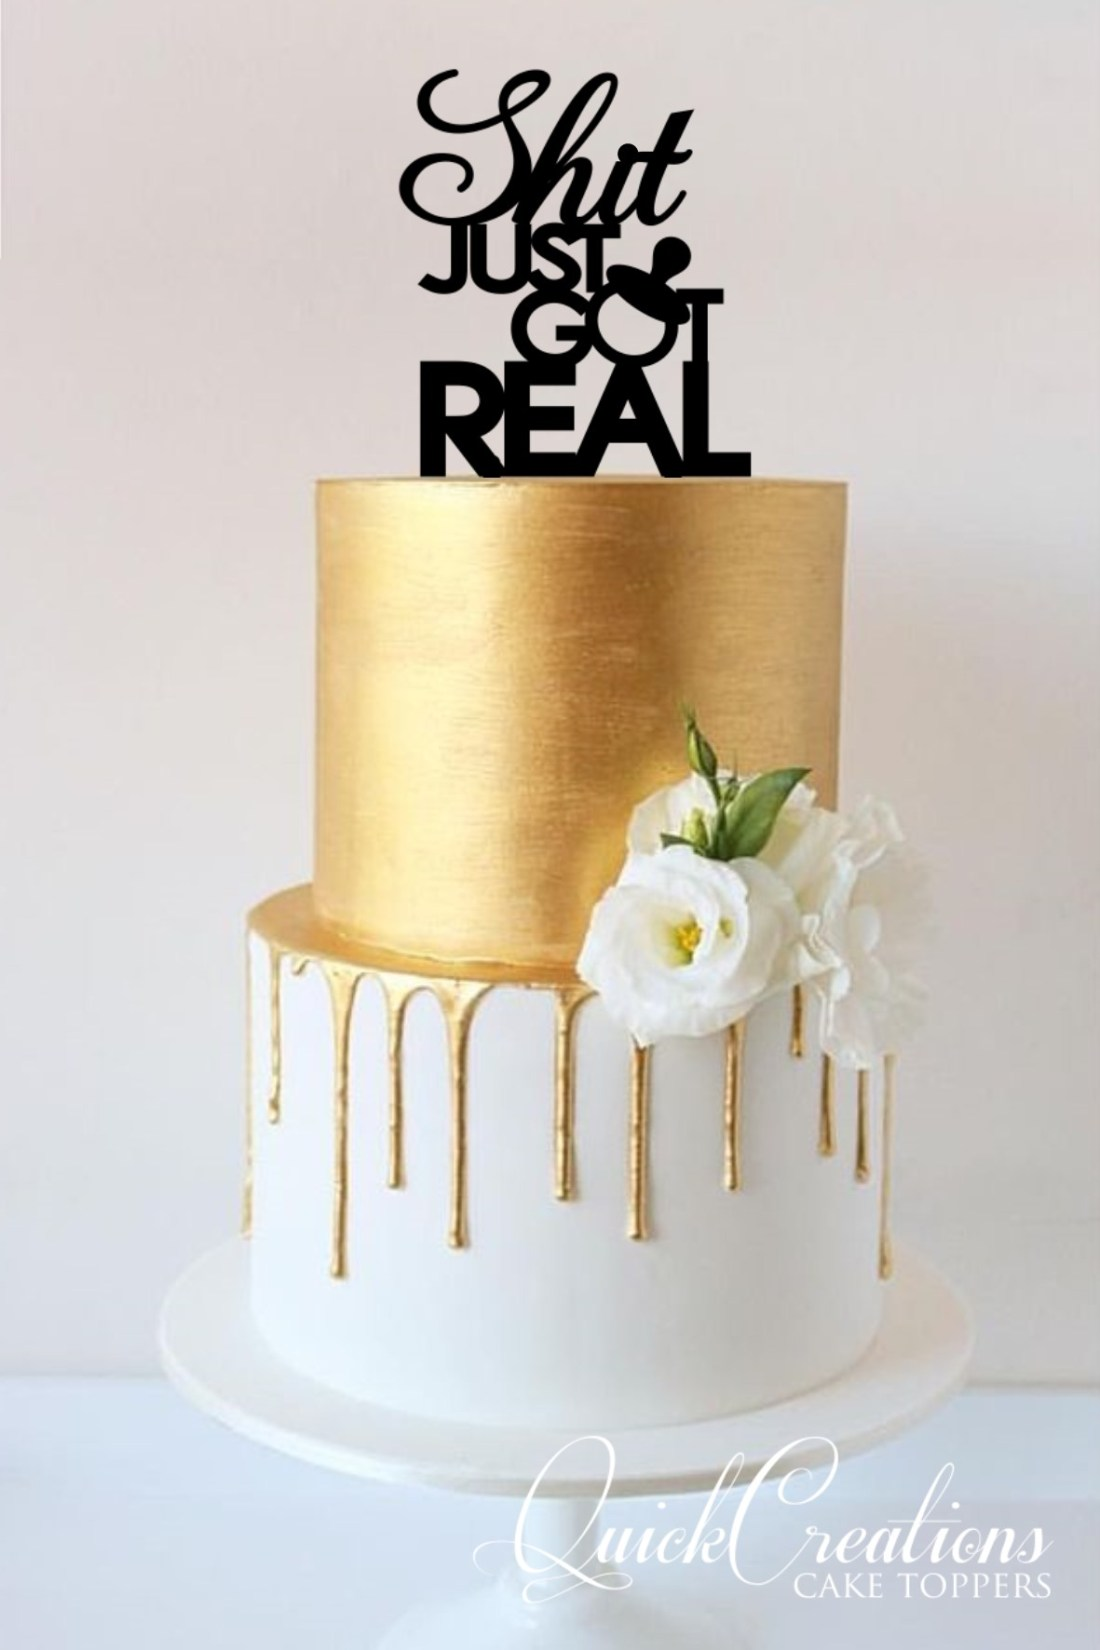 Quick Creations Cake Topper - Shit Just Got Real Dummy